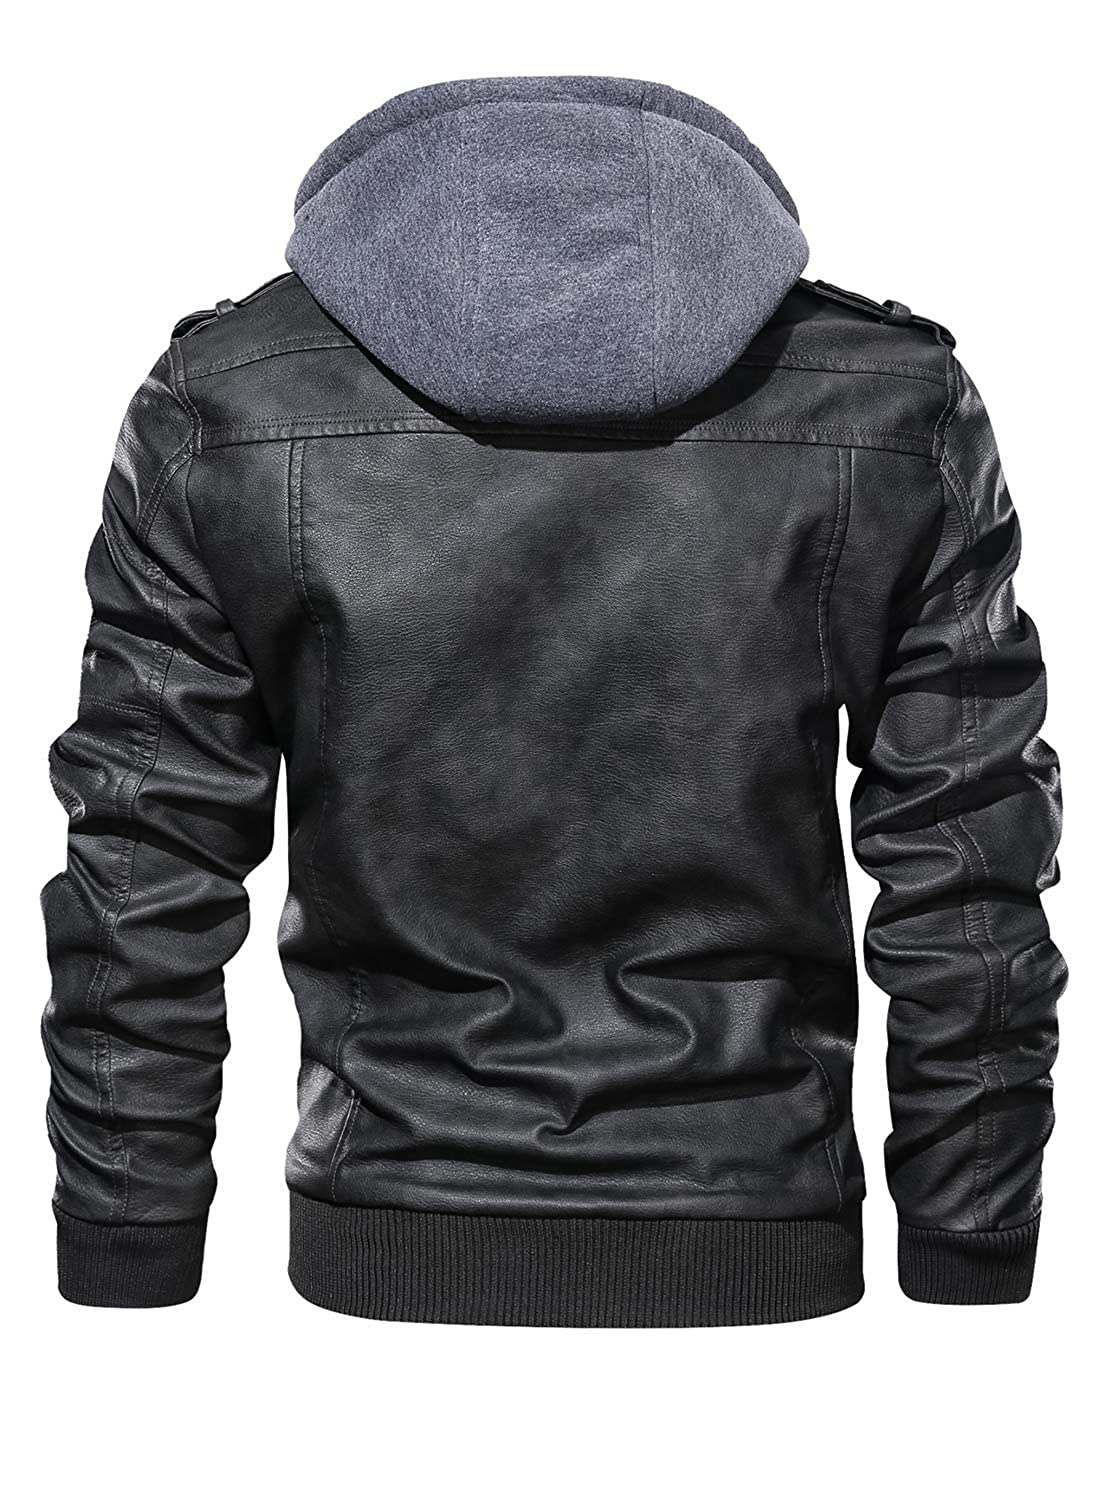 Hood Crew Mens Casual Stand Collar Pu Faux Leather Zip Up Motorcycle Bomber Jacket With A Removable Hood